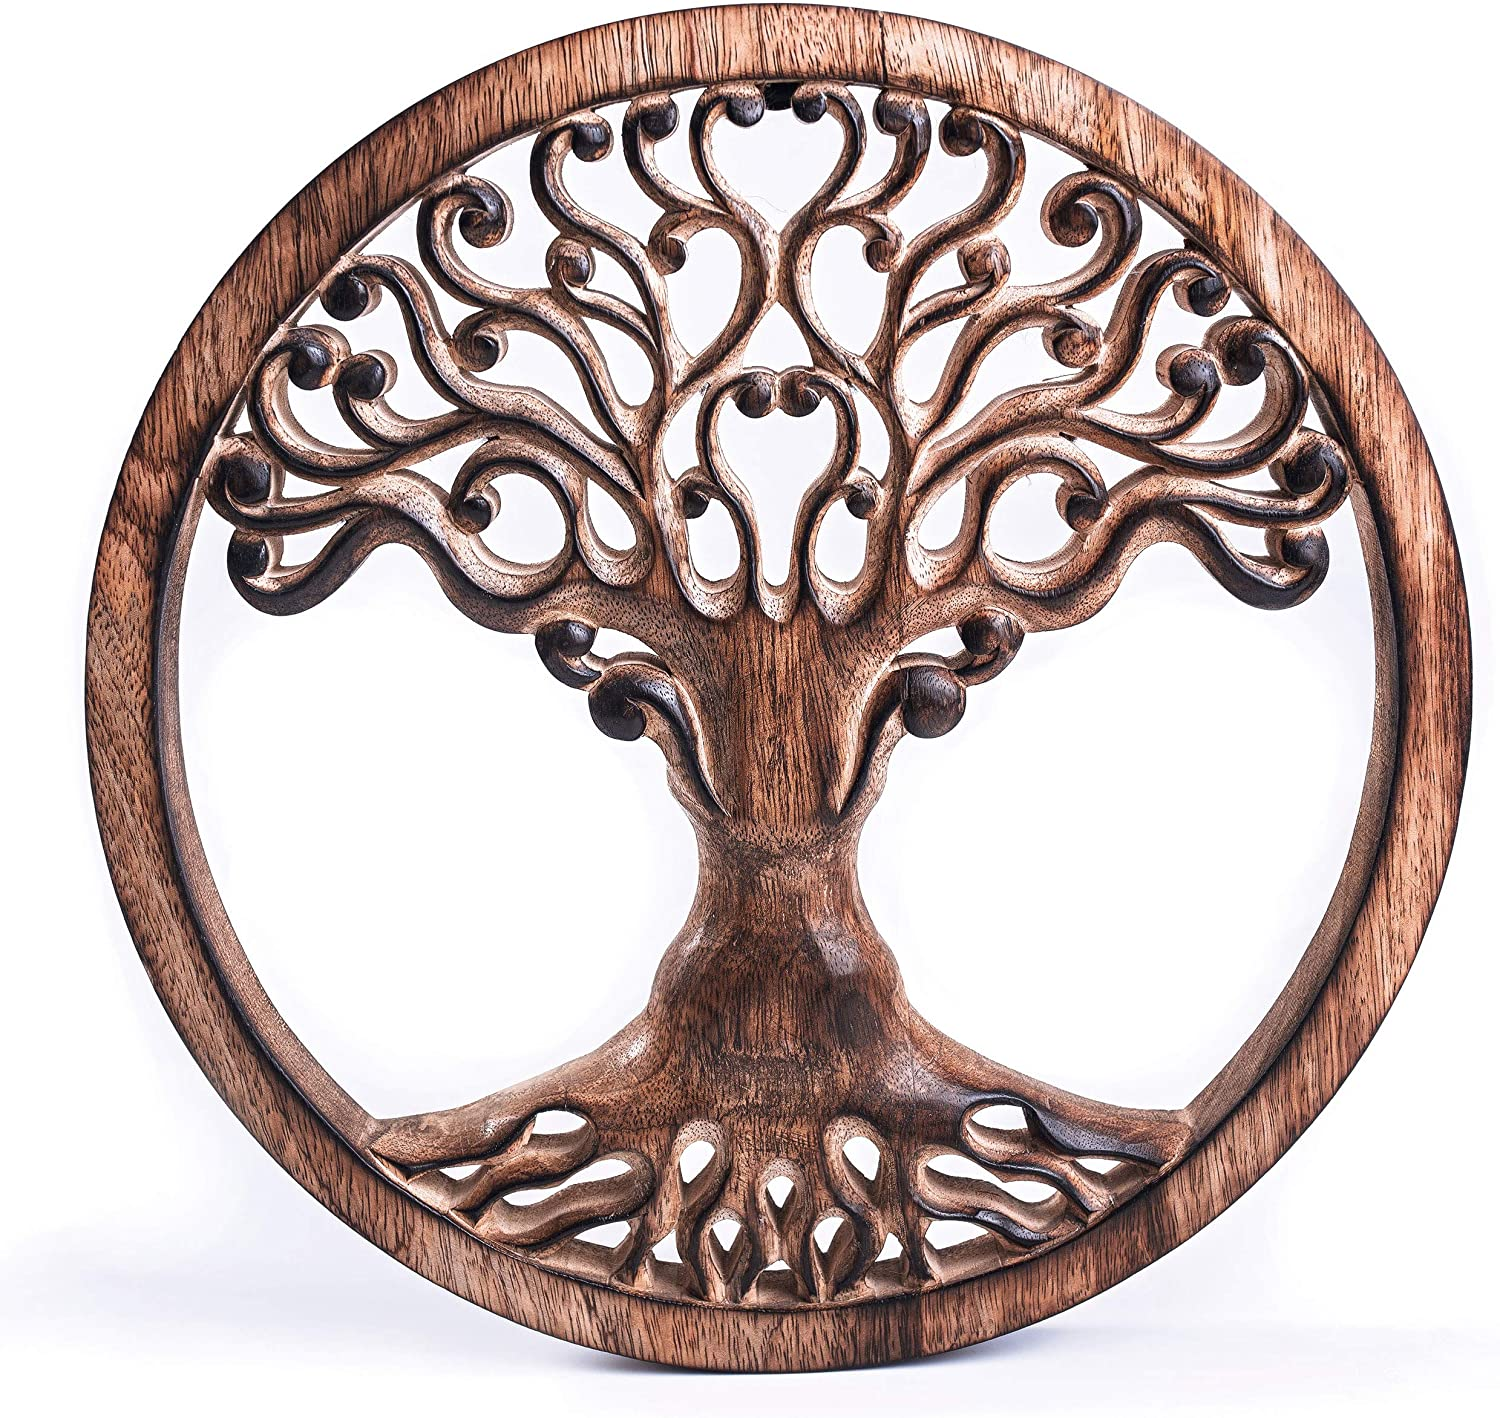 Tree of Life Wall Hanging Decoration - Handcrafted 12